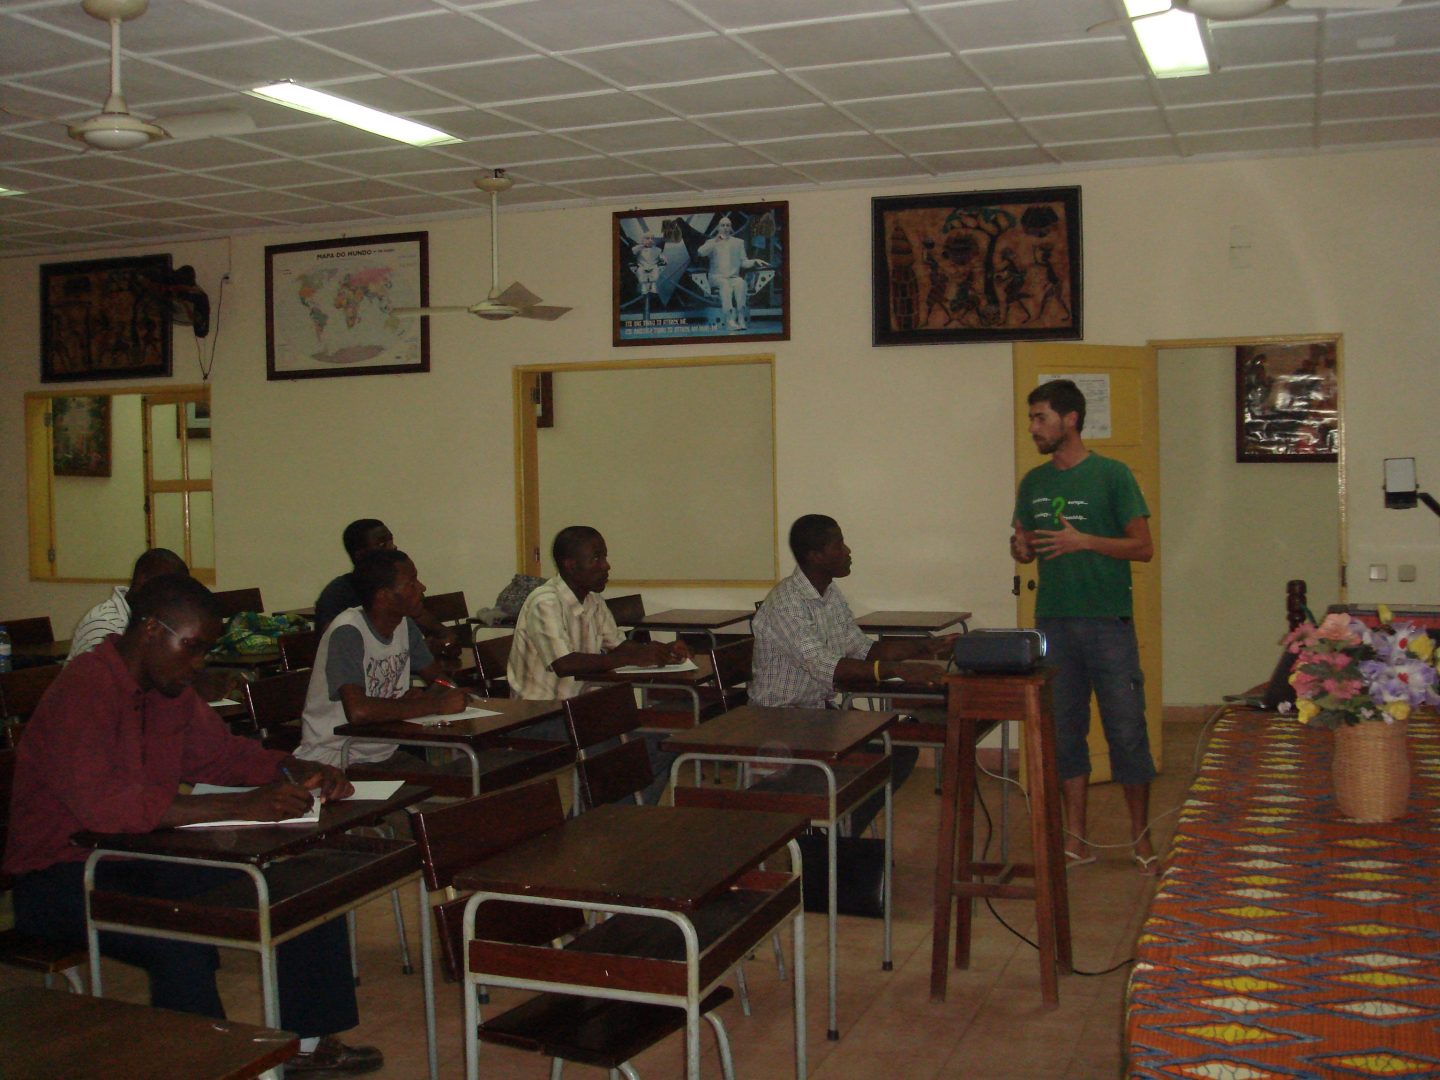 Portuguese guy holding is standing in a class room and gives a presentation in front of African school children.